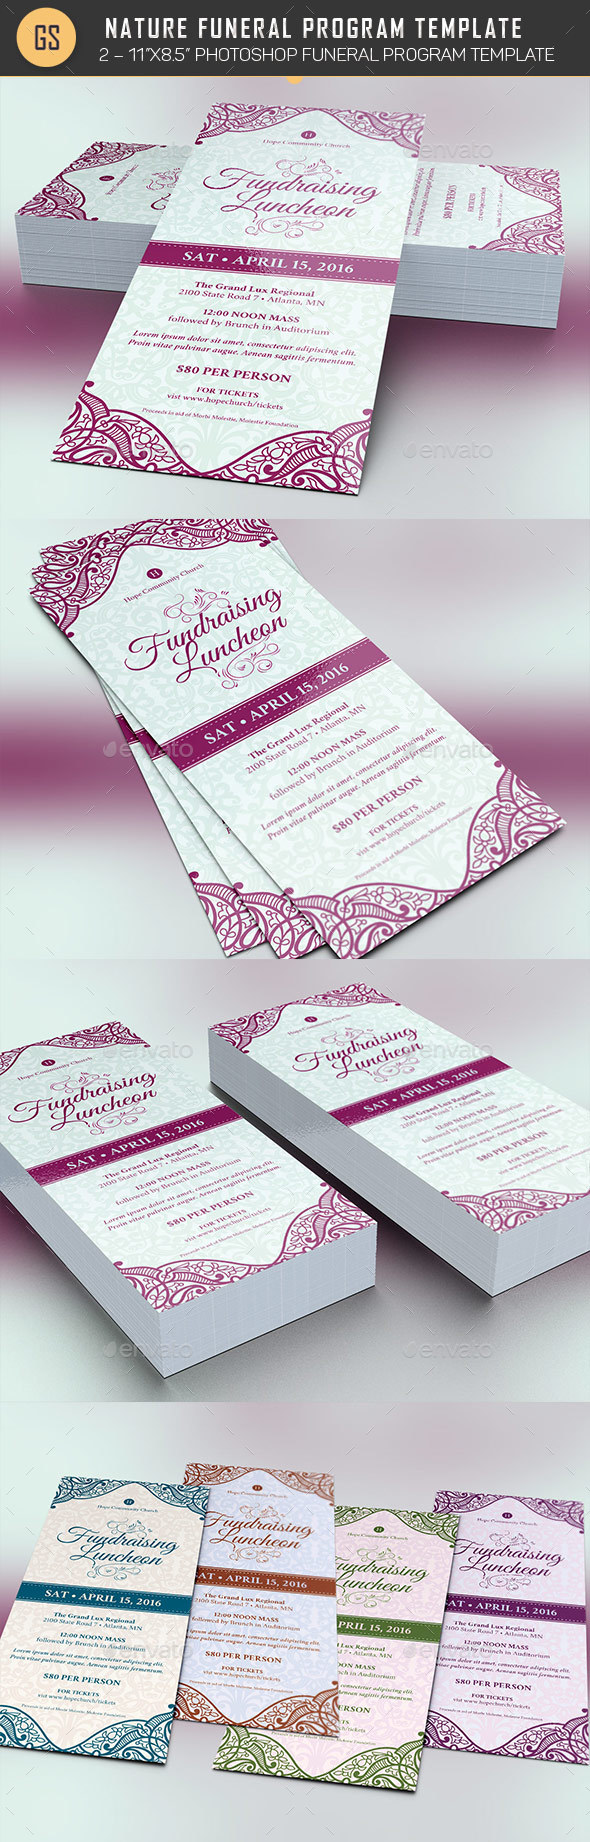 Fundraising Luncheon Flyer Template   Events Flyers  Luncheon Flyer Template